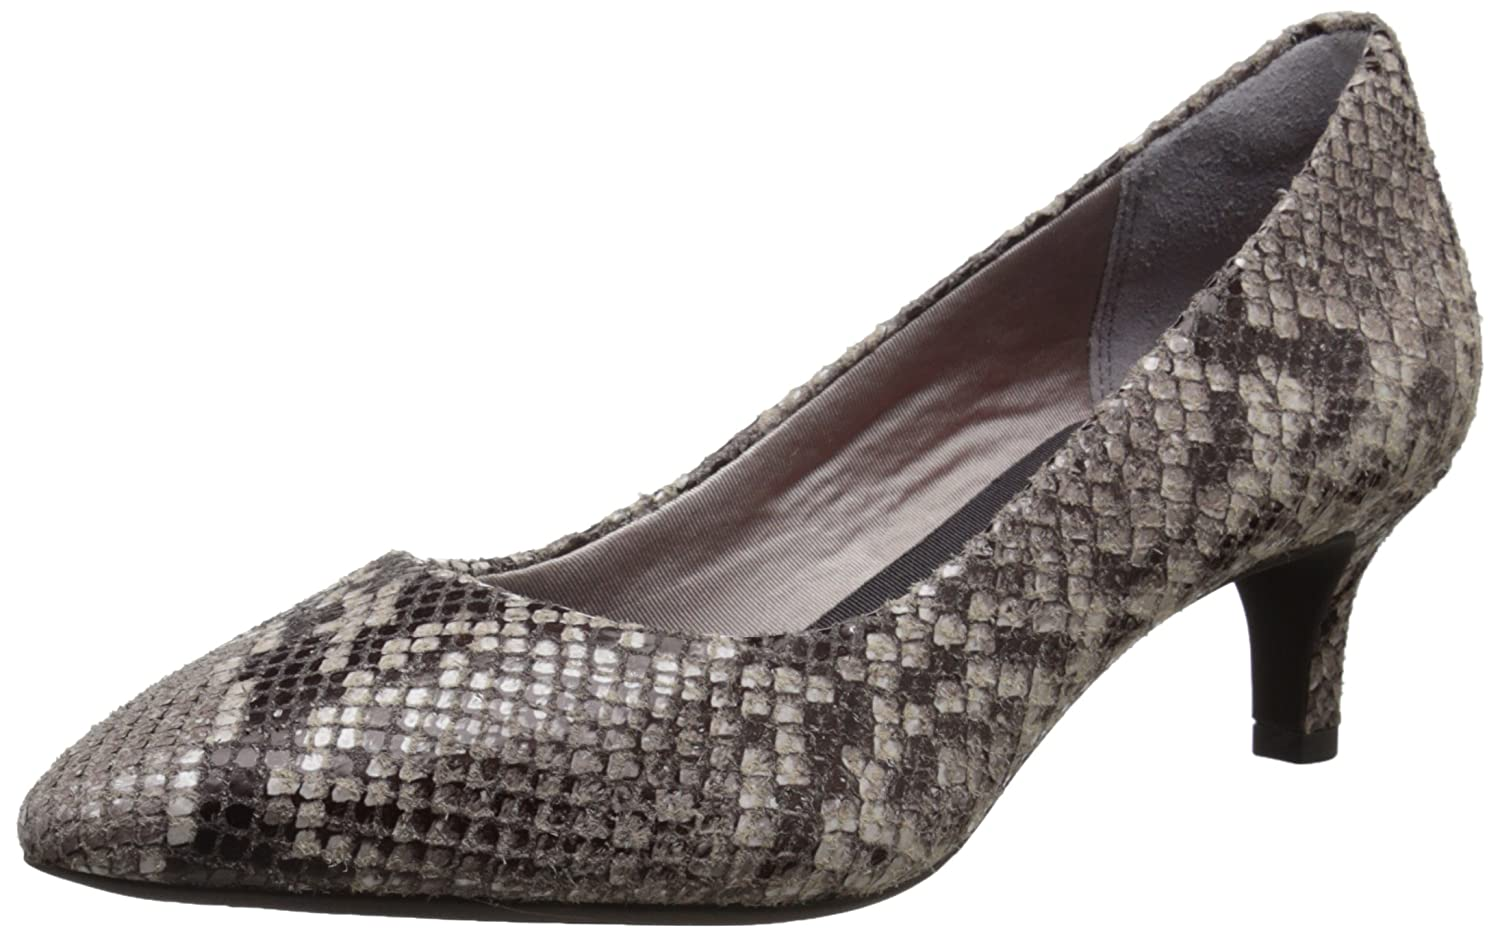 Rockport Women's Total Motion Kalila Dress Pump B013QSLGRI 9.5 B(M) US|Roccia Python